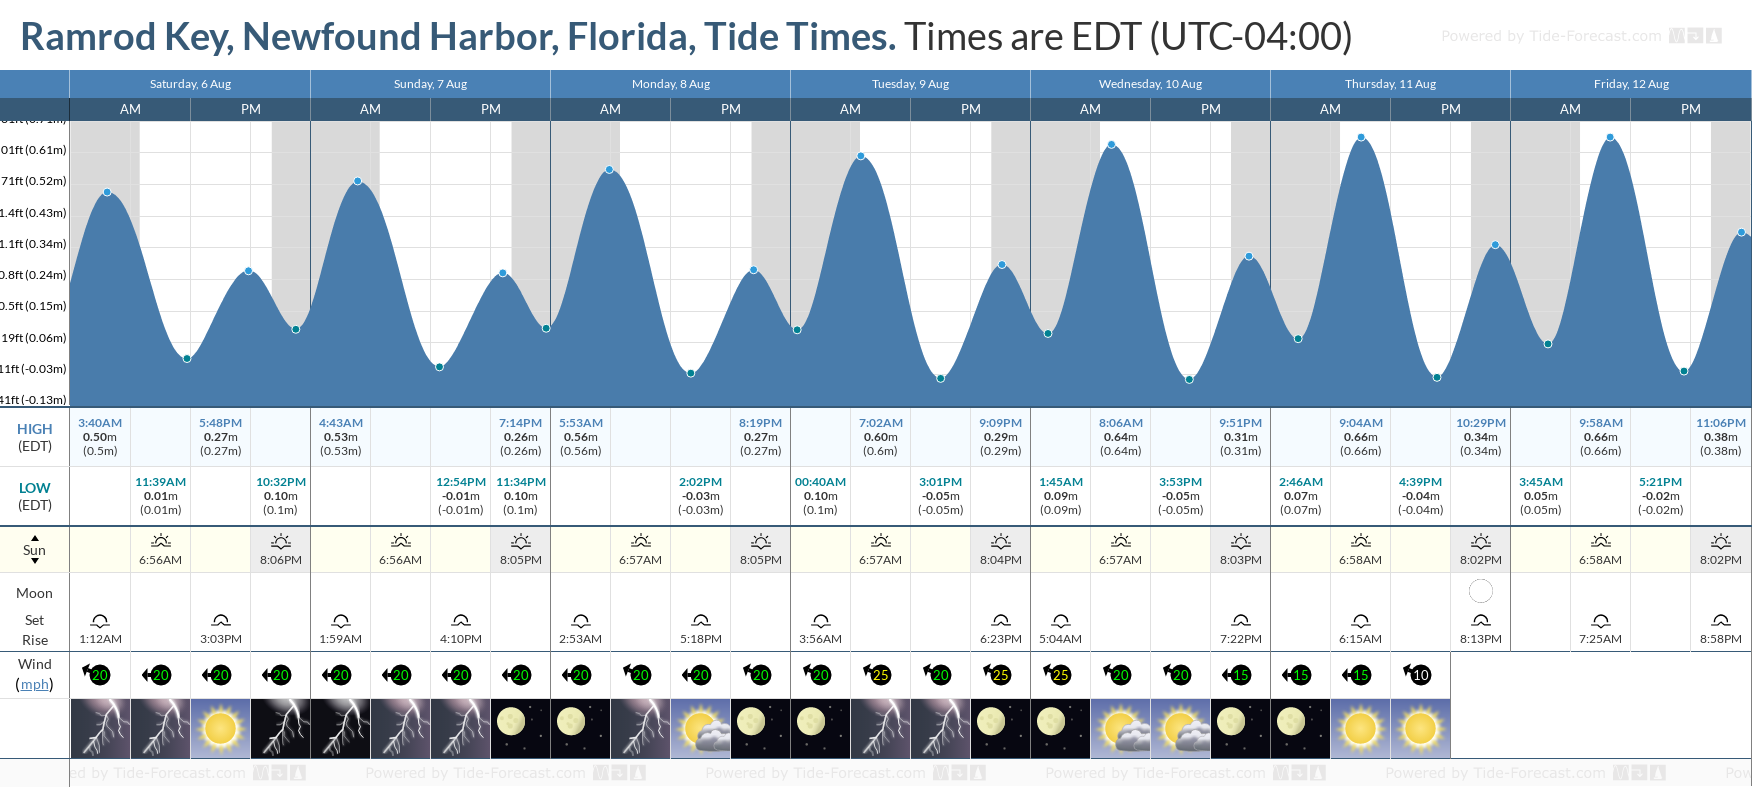 Ramrod Key, Newfound Harbor, Florida Tide Chart including high and low tide tide times for the next 7 days